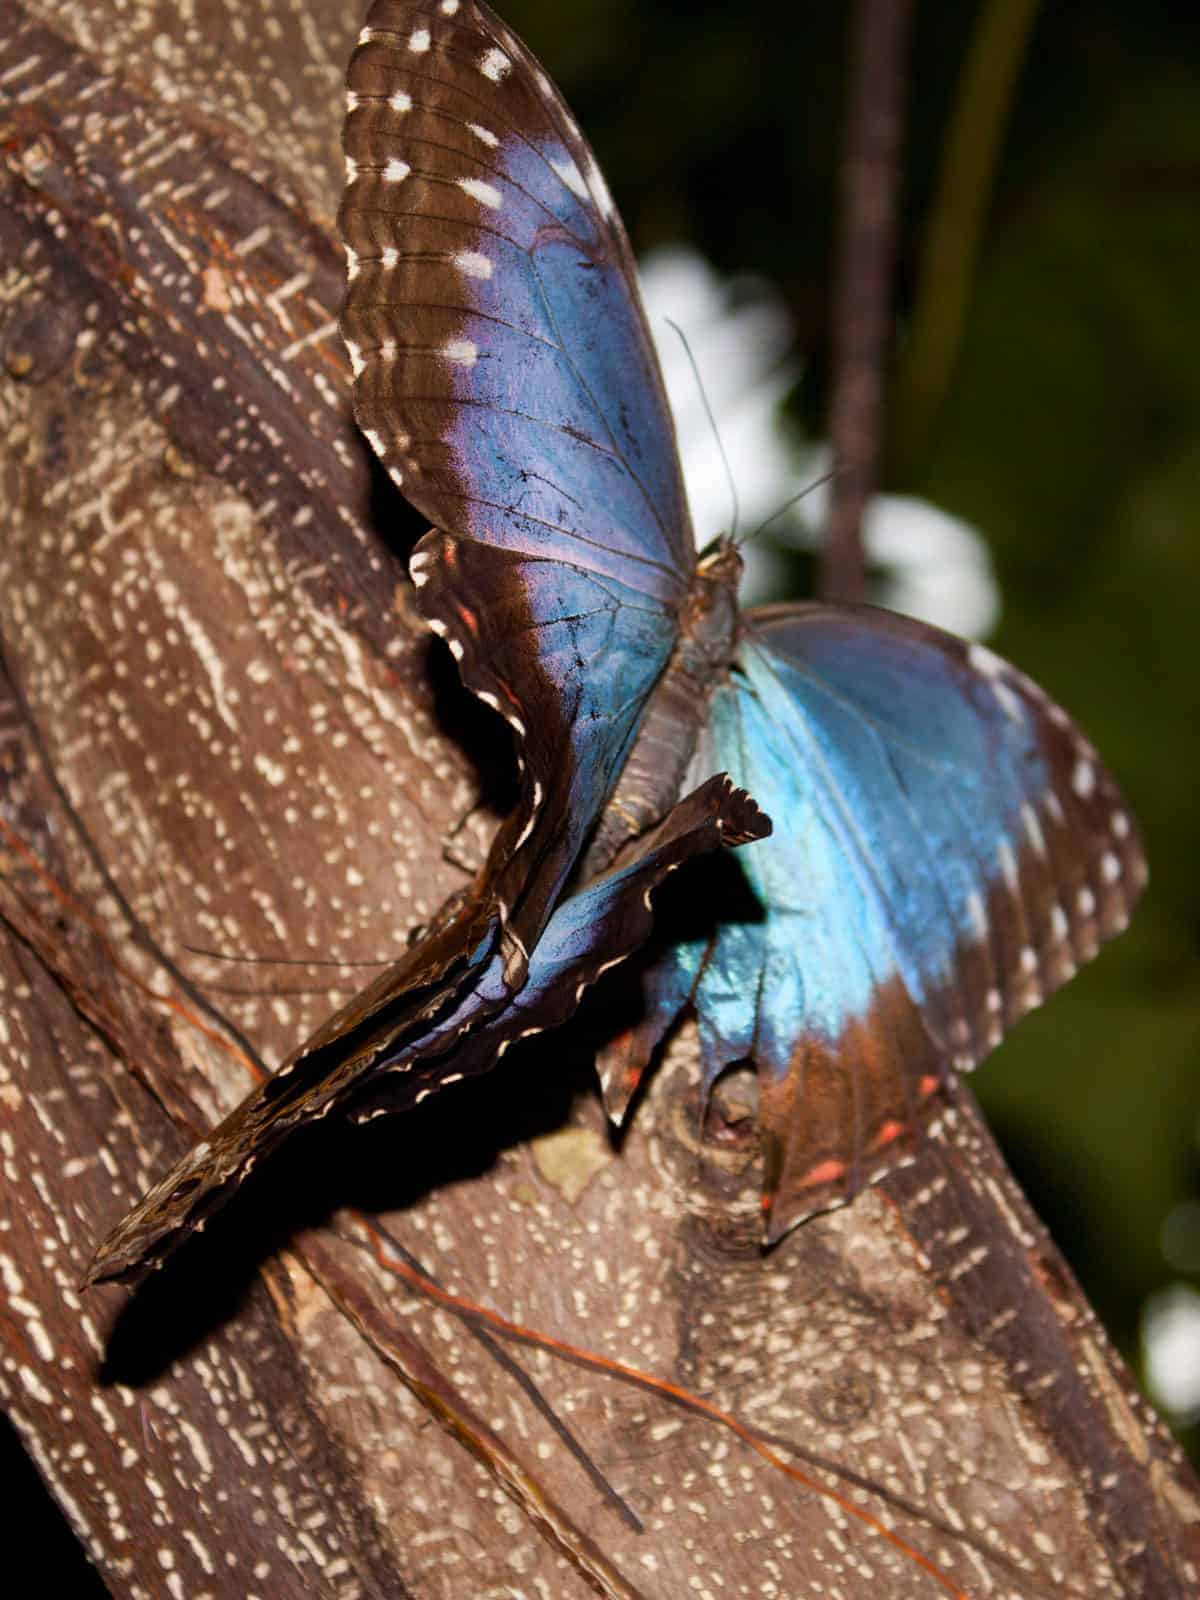 Blue morpho butterfly mating